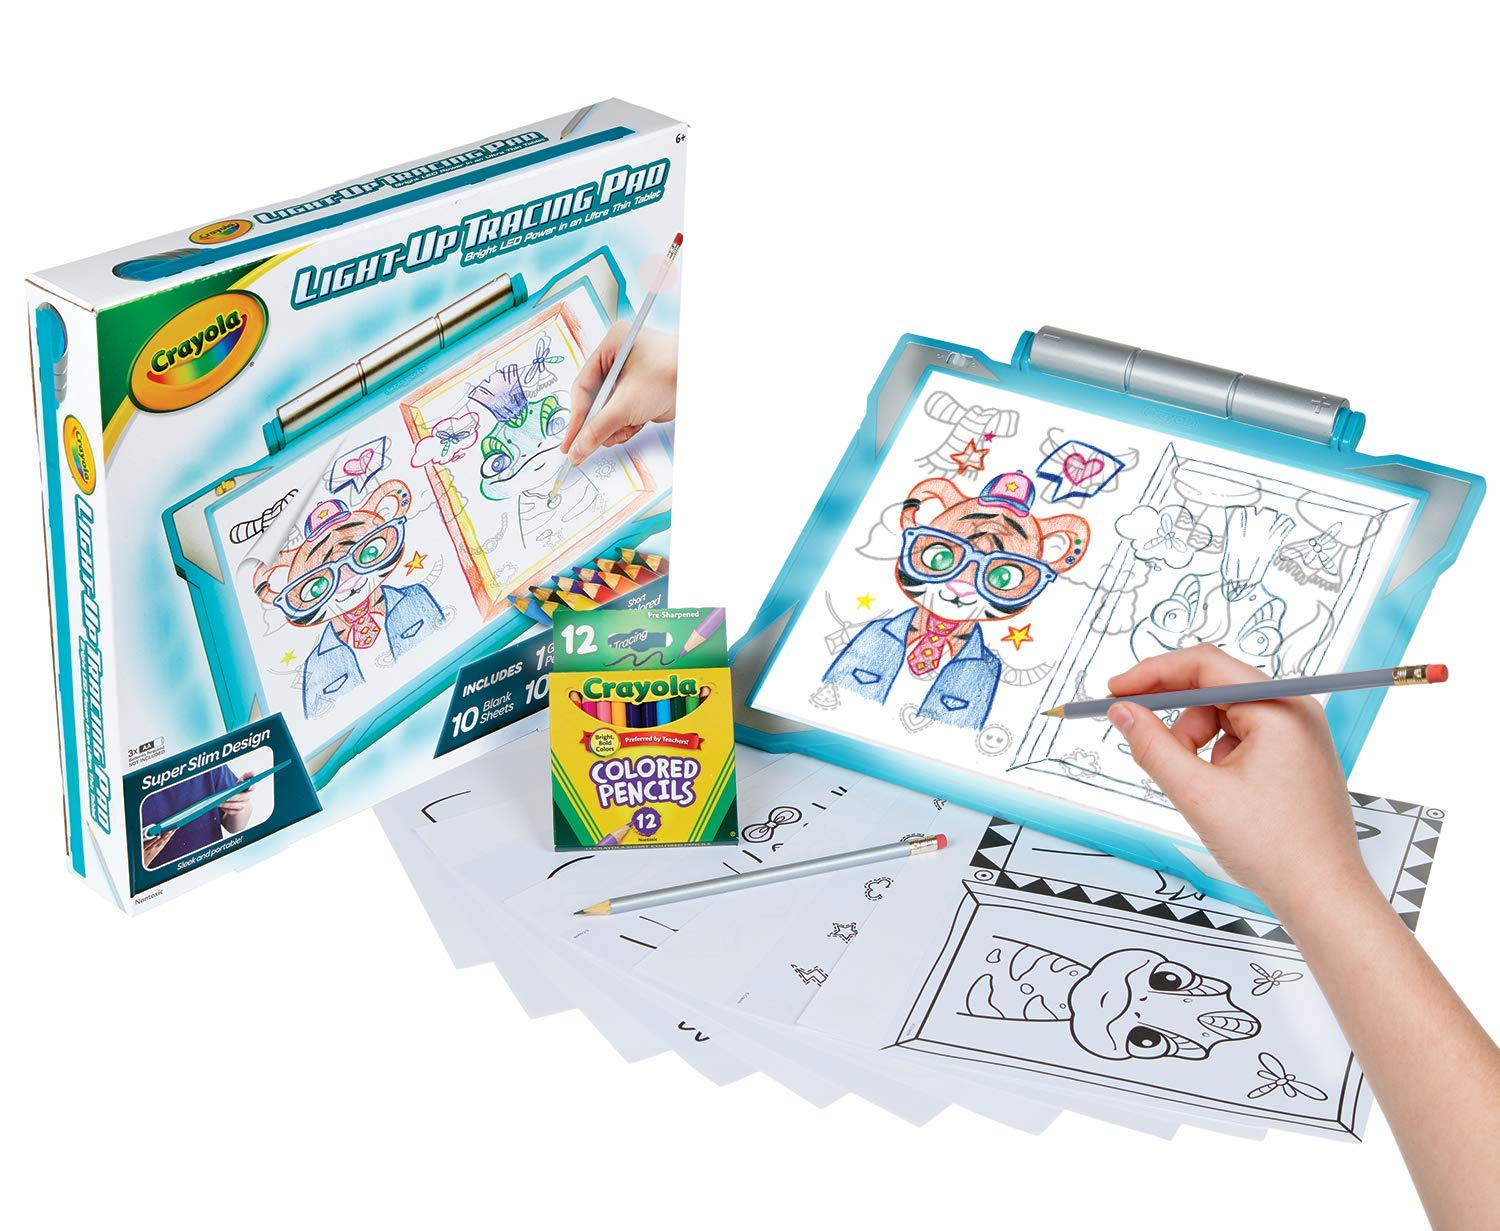 Crayola Light Up Tracing Pad Teal Amazon Exclusive Toys Gift For Kids Ages 6 7 8 9 10 04 0830 Inspiration